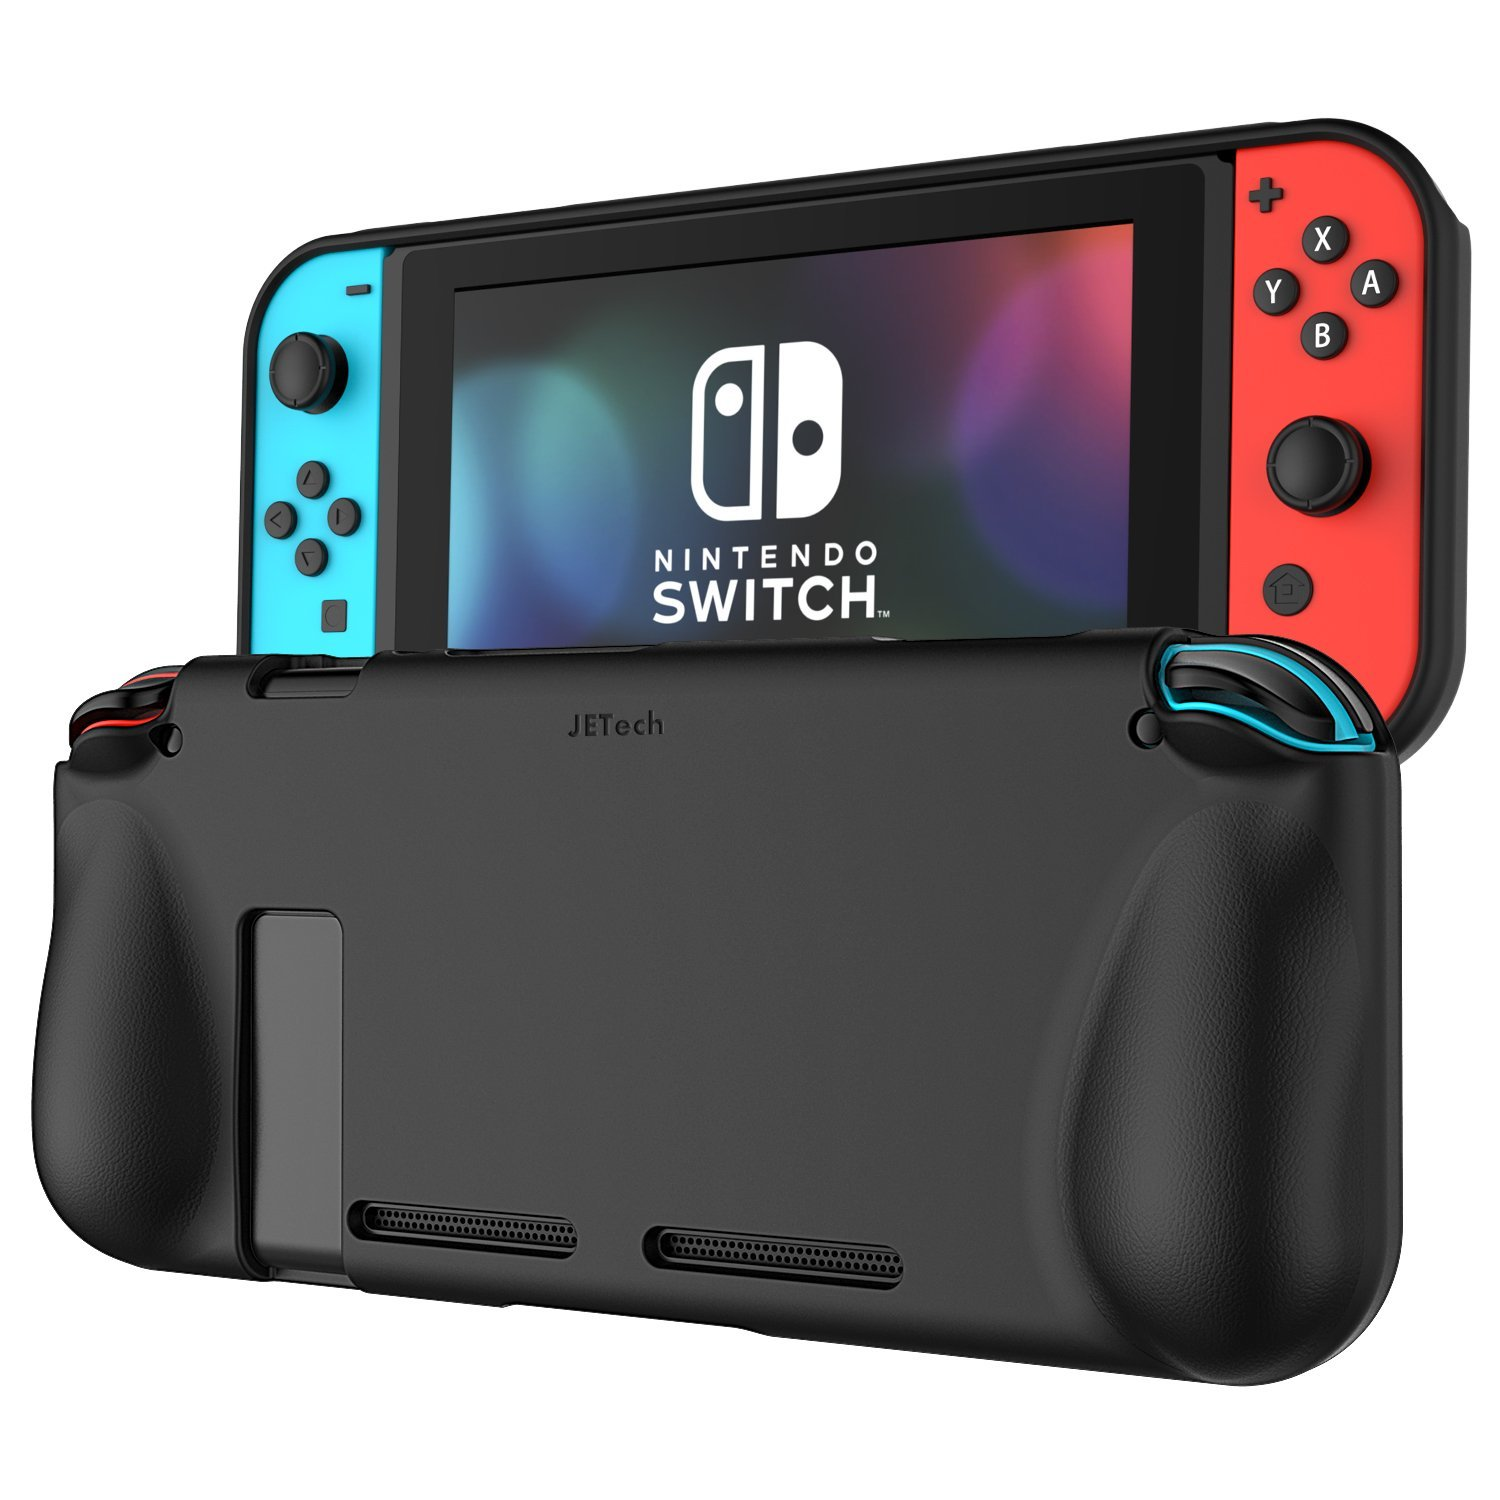 Nintendo Switch Case, JETech Protective Case Cover with Shock-Absorption and Anti-Scratch Design for Nintendo Switch (Black)